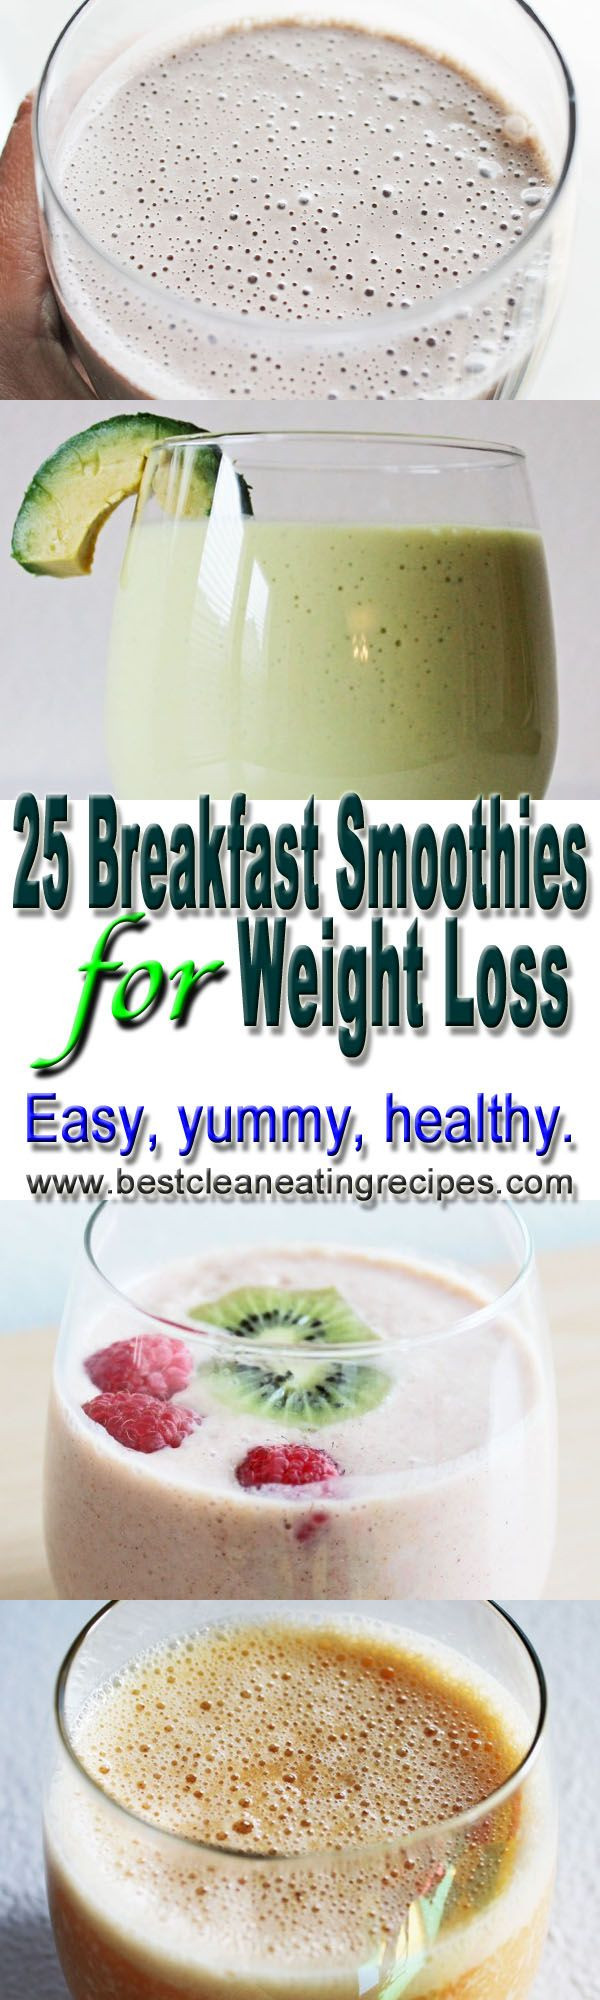 Weight Loss Breakfast Smoothies  25 breakfast smoothies for weight loss by Best Clean